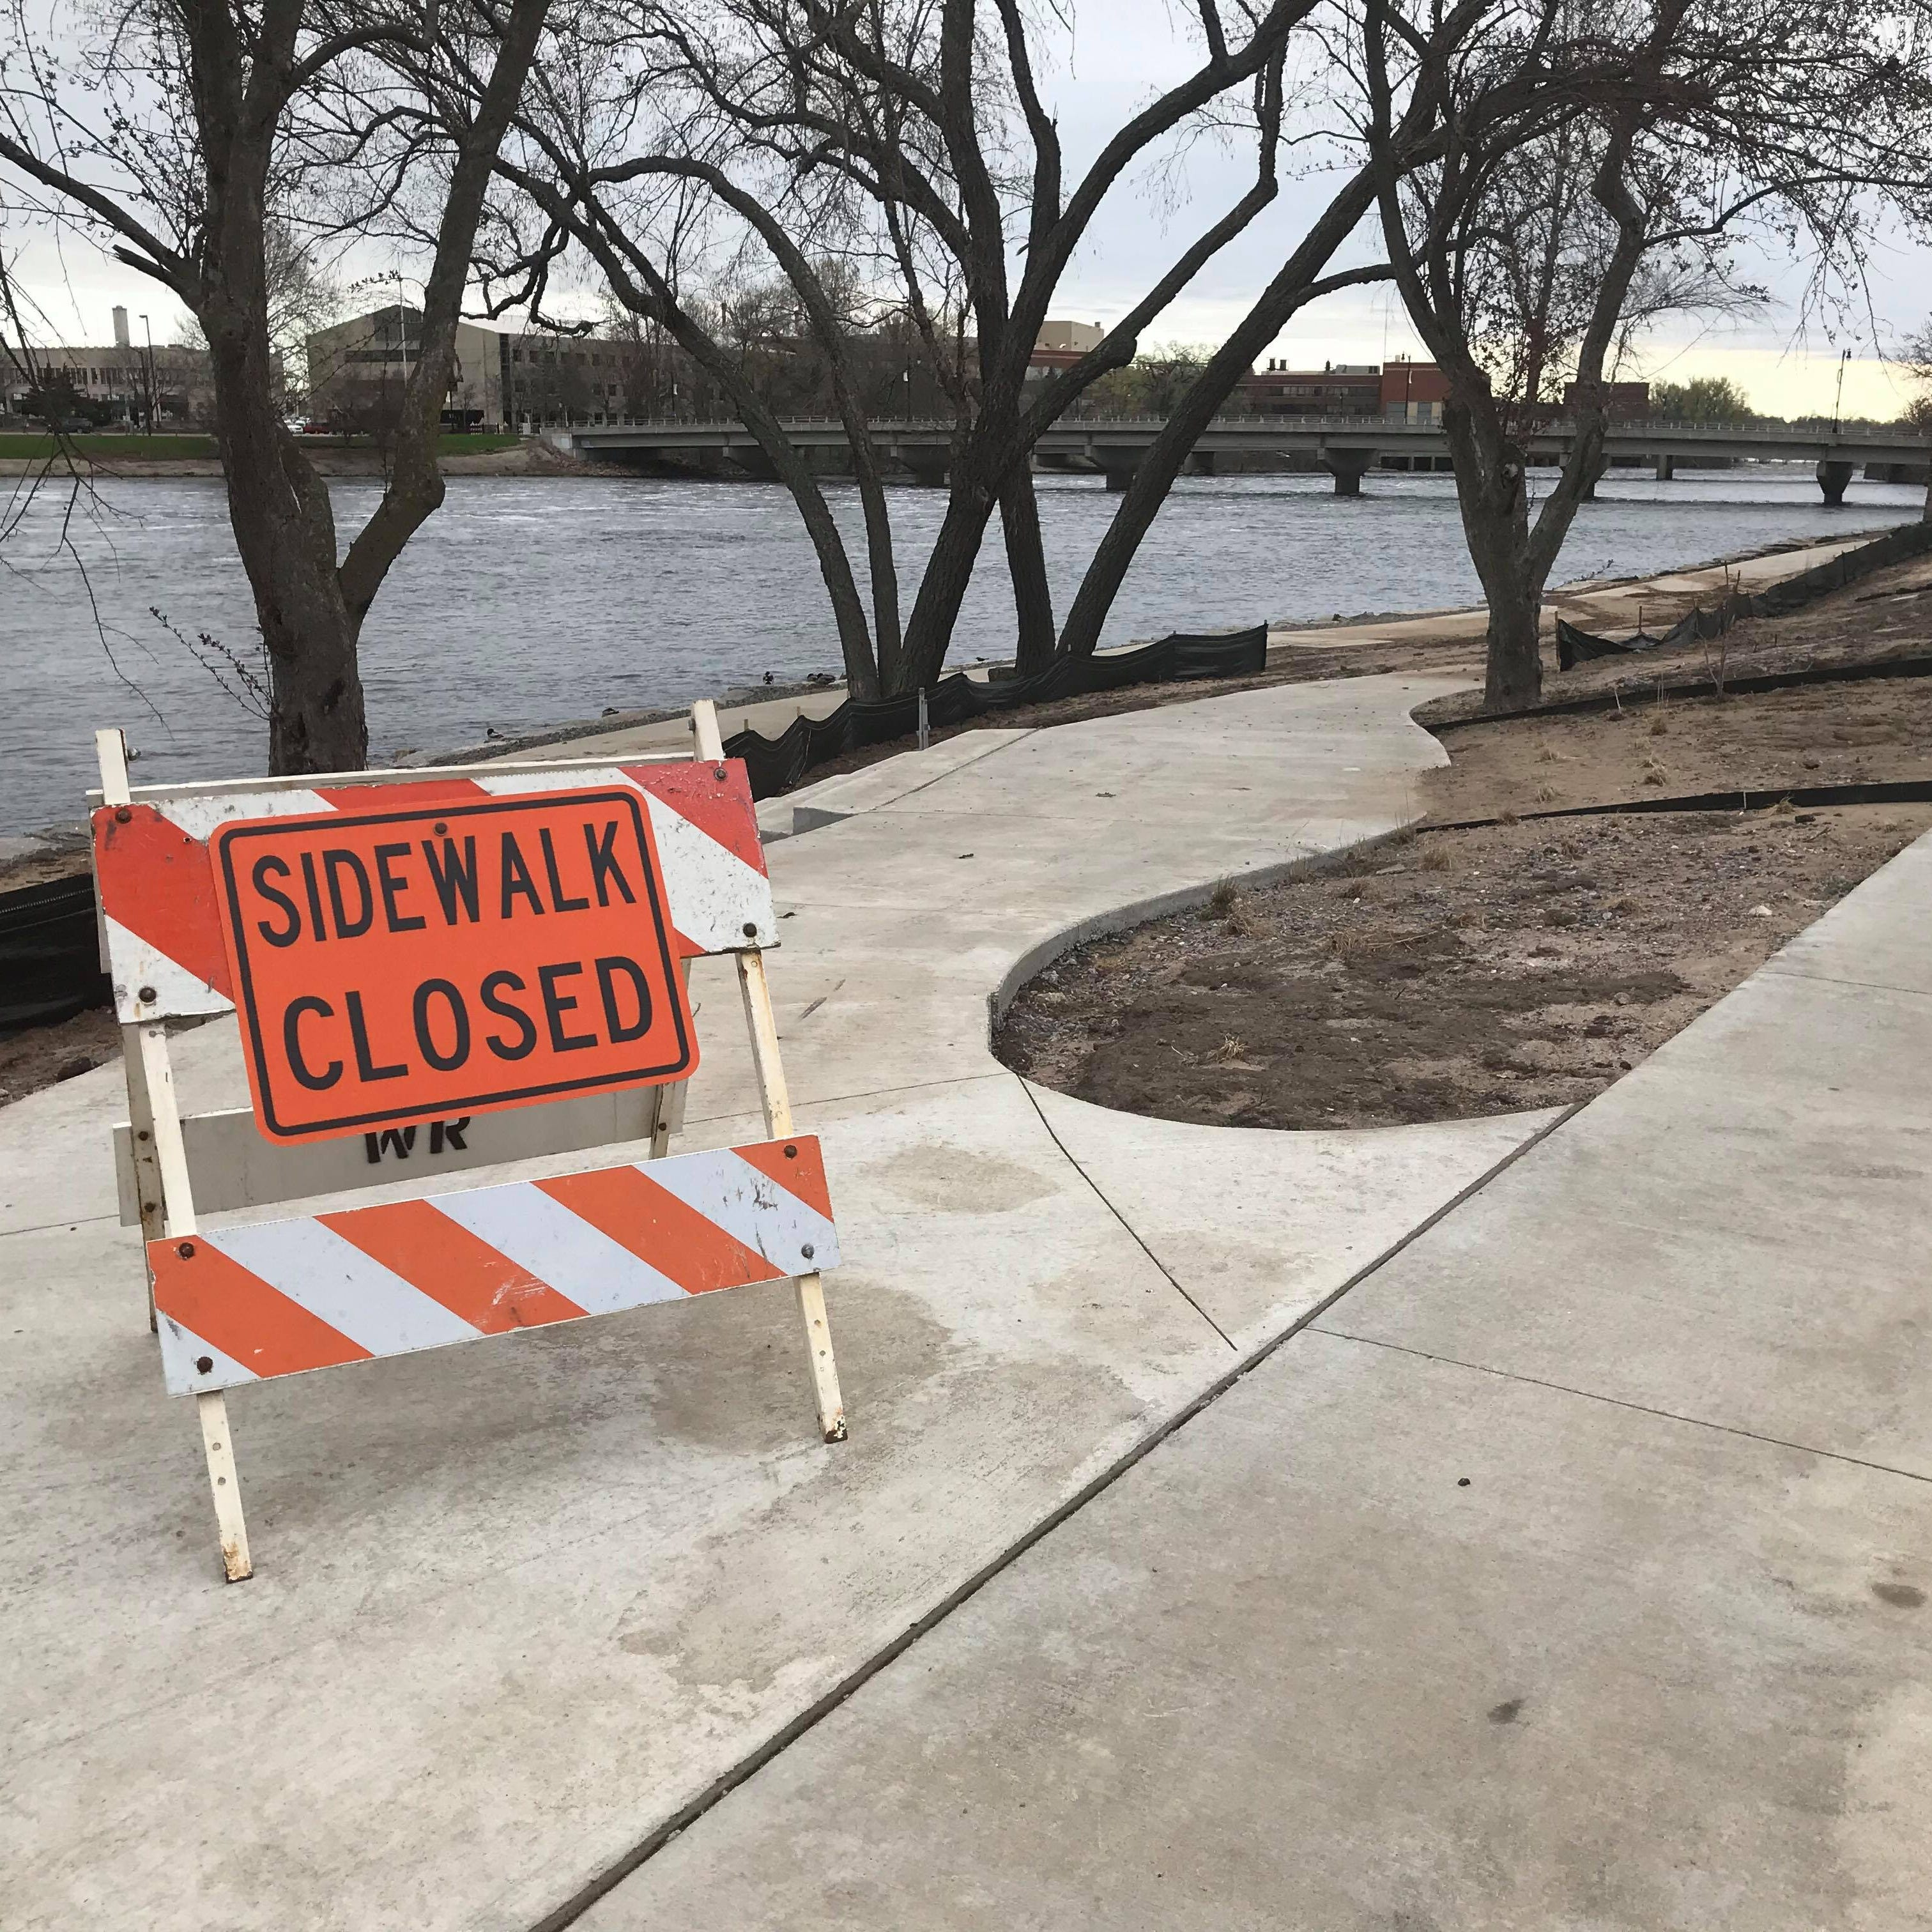 Flood waters leave minor damage at renovated riverfront parks in Wisconsin Rapids